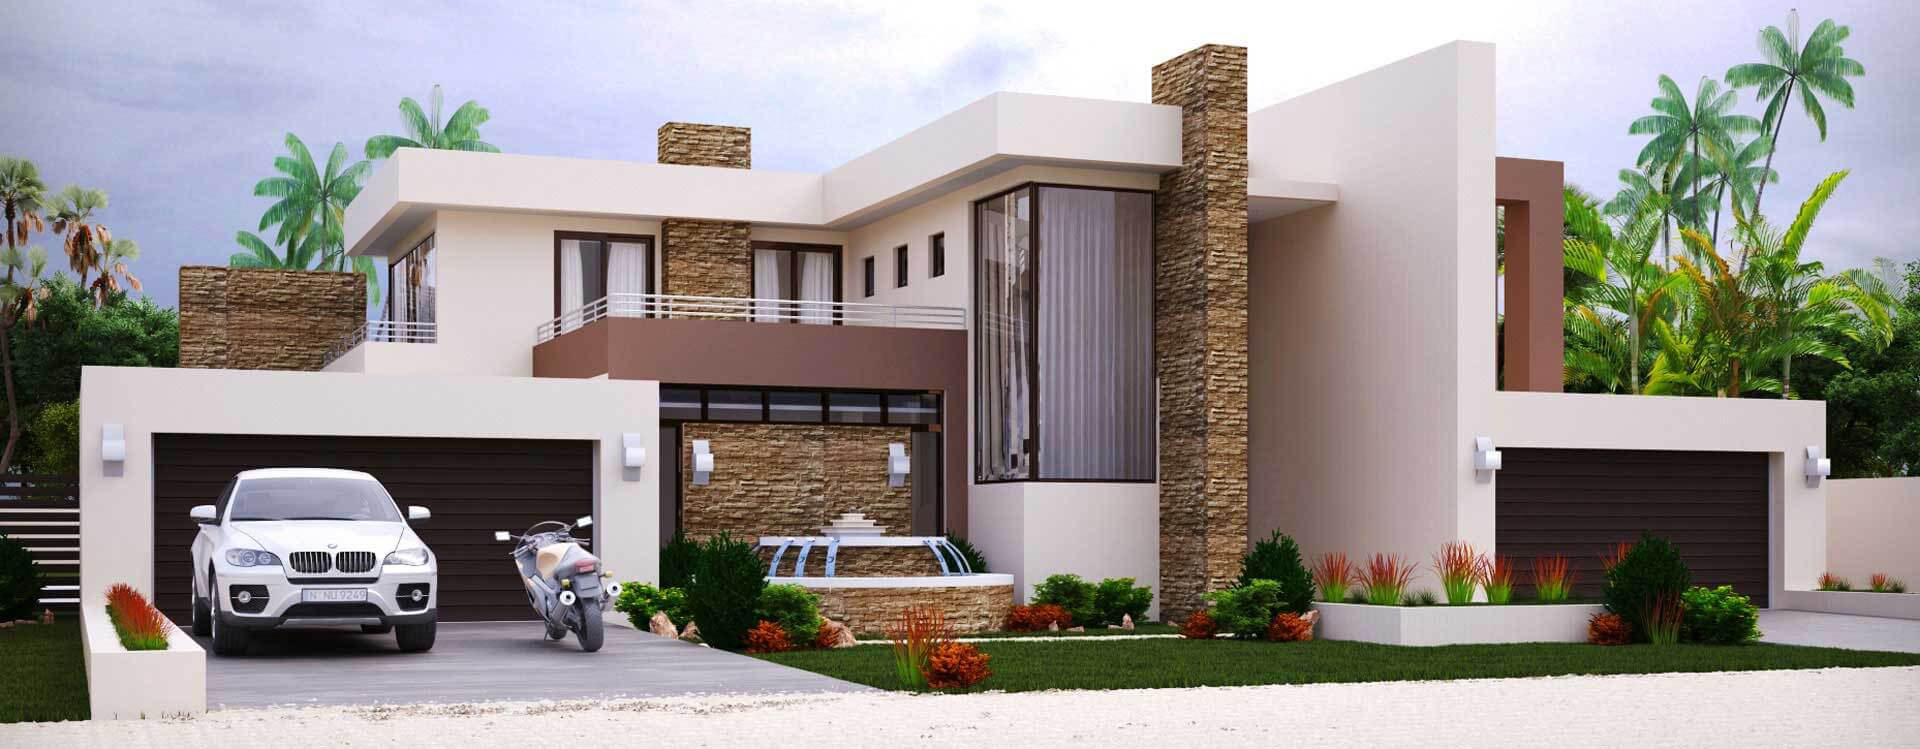 4 Bedroom Modern House Plans | Modern House Designs ...